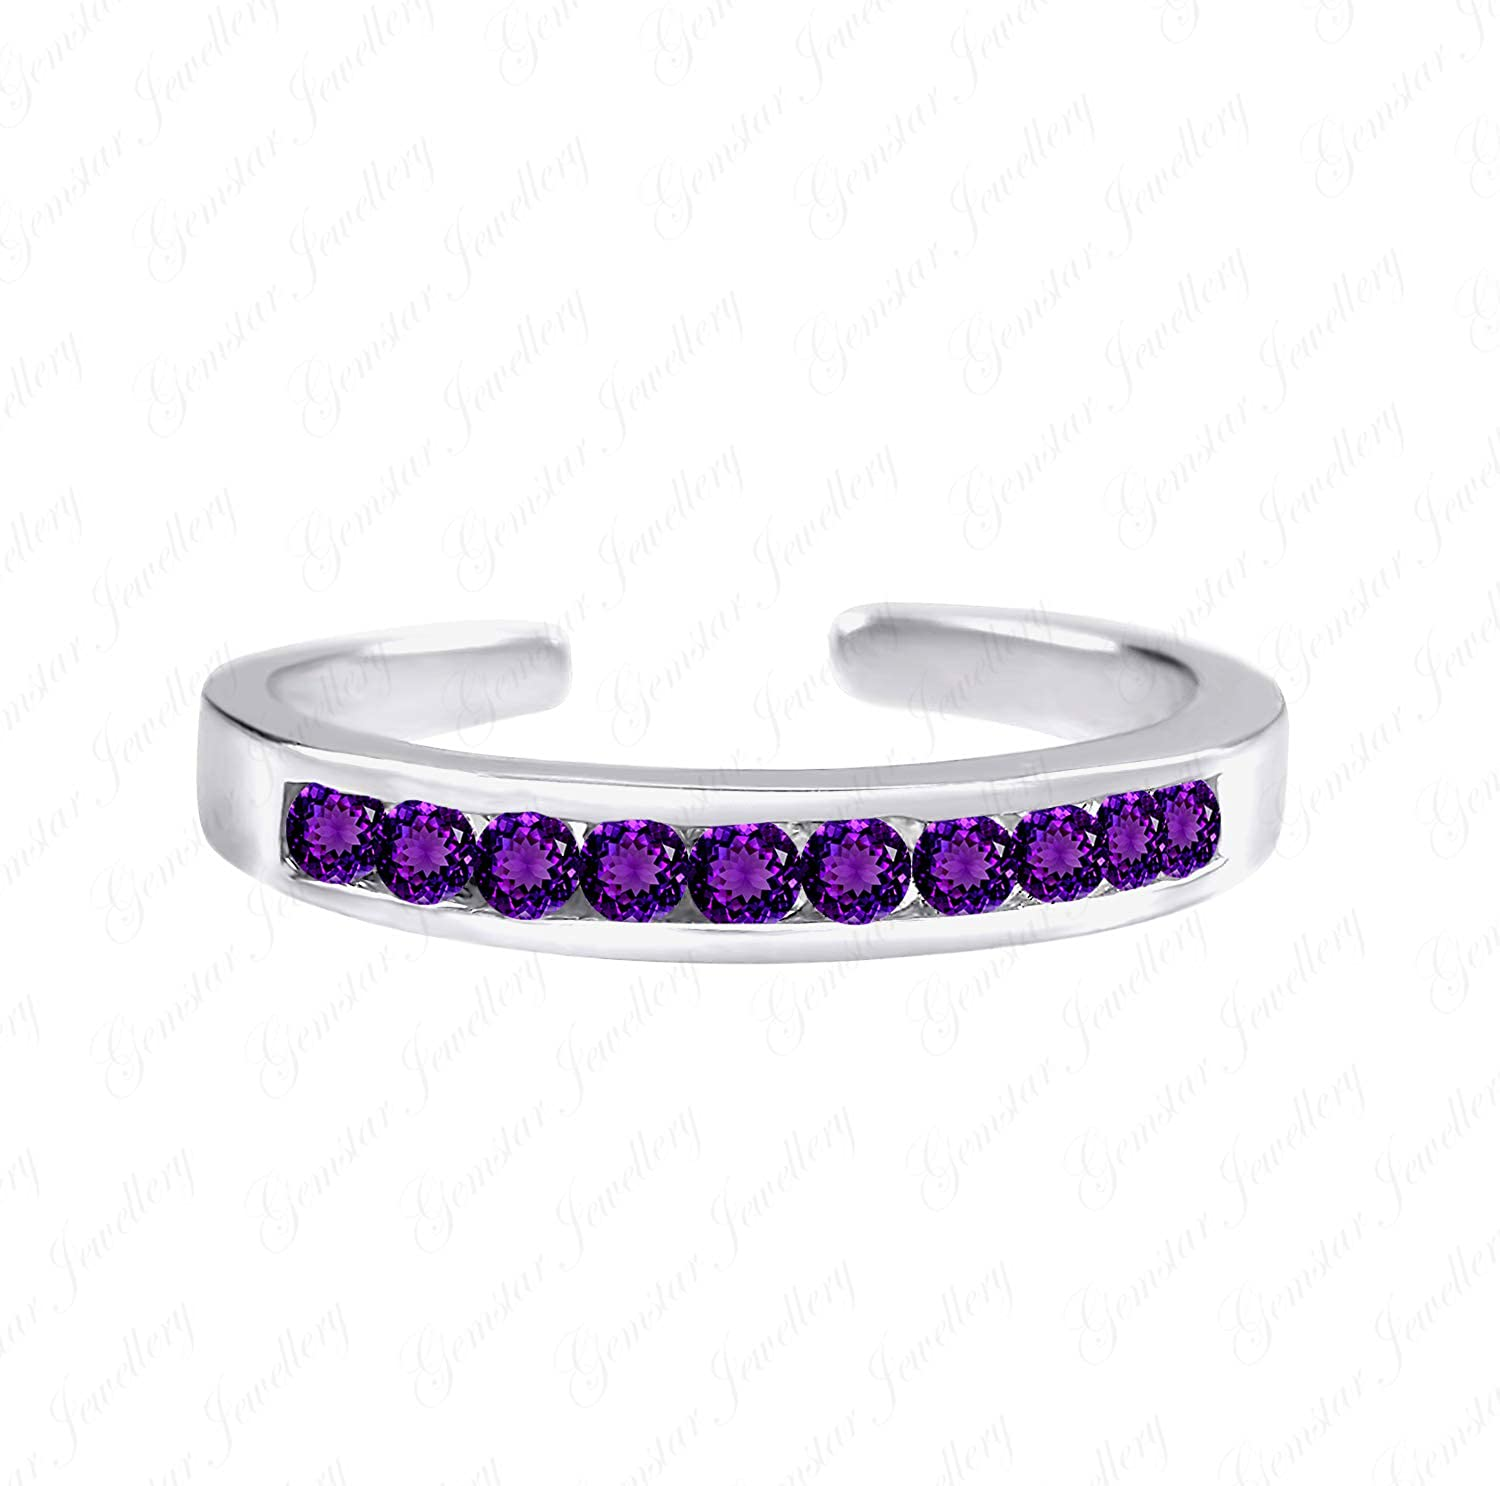 Gemstar Jewellery Classy Look Retro Toe Ring with Purple Amethyst 14k White Gold Plated 925 Silver